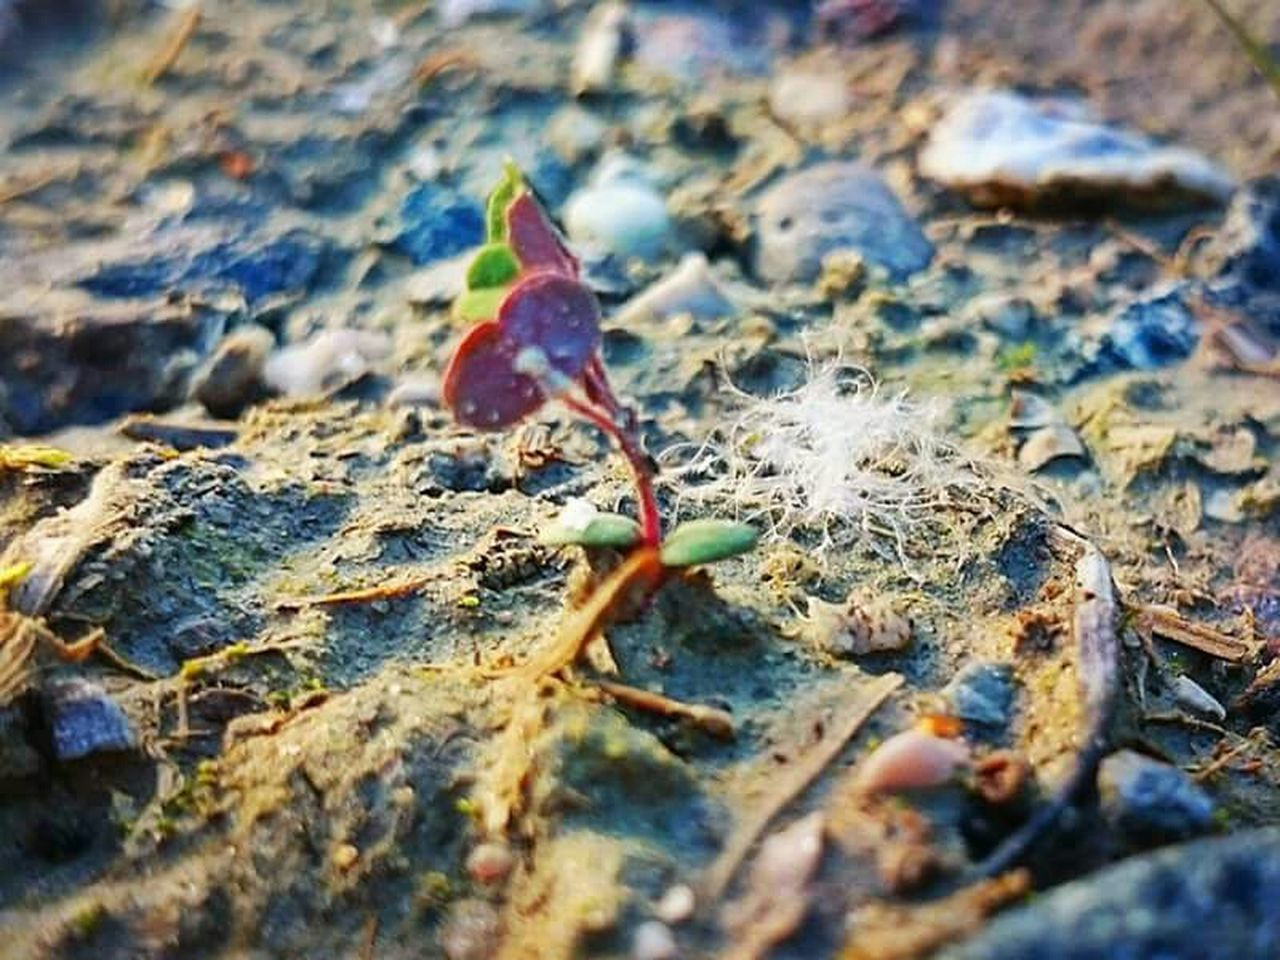 leaf, autumn, selective focus, change, nature, day, dry, fallen, outdoors, no people, close-up, maple leaf, beauty in nature, maple, fragility, animal themes